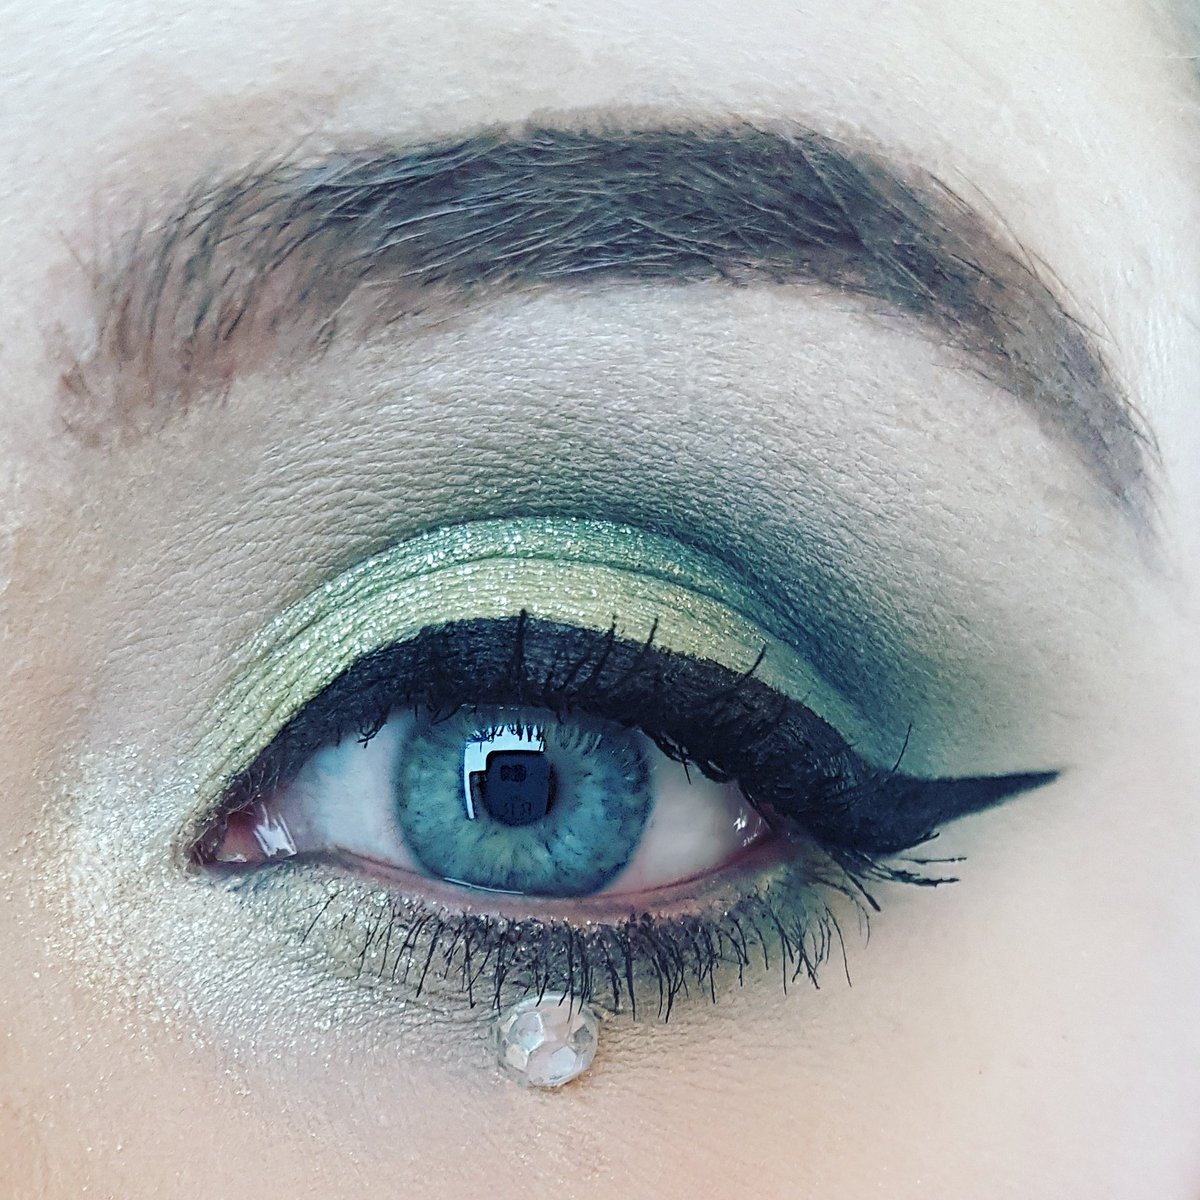 Close up of my #slytherin look using the @MakeupRVLTN Re-Loaded Palette! Please take a look at the tutorial &amp; sub if you like it   https:// m.youtube.com/watch?feature= youtu.be&amp;v=y4kUkM_l4Hw &nbsp; …  #SmallYouTuberArmy #smallyoutubercommunity #smallyoutuber #HarryPotter #BBloggers #beauty #makeup <br>http://pic.twitter.com/EDy8fFlt2M